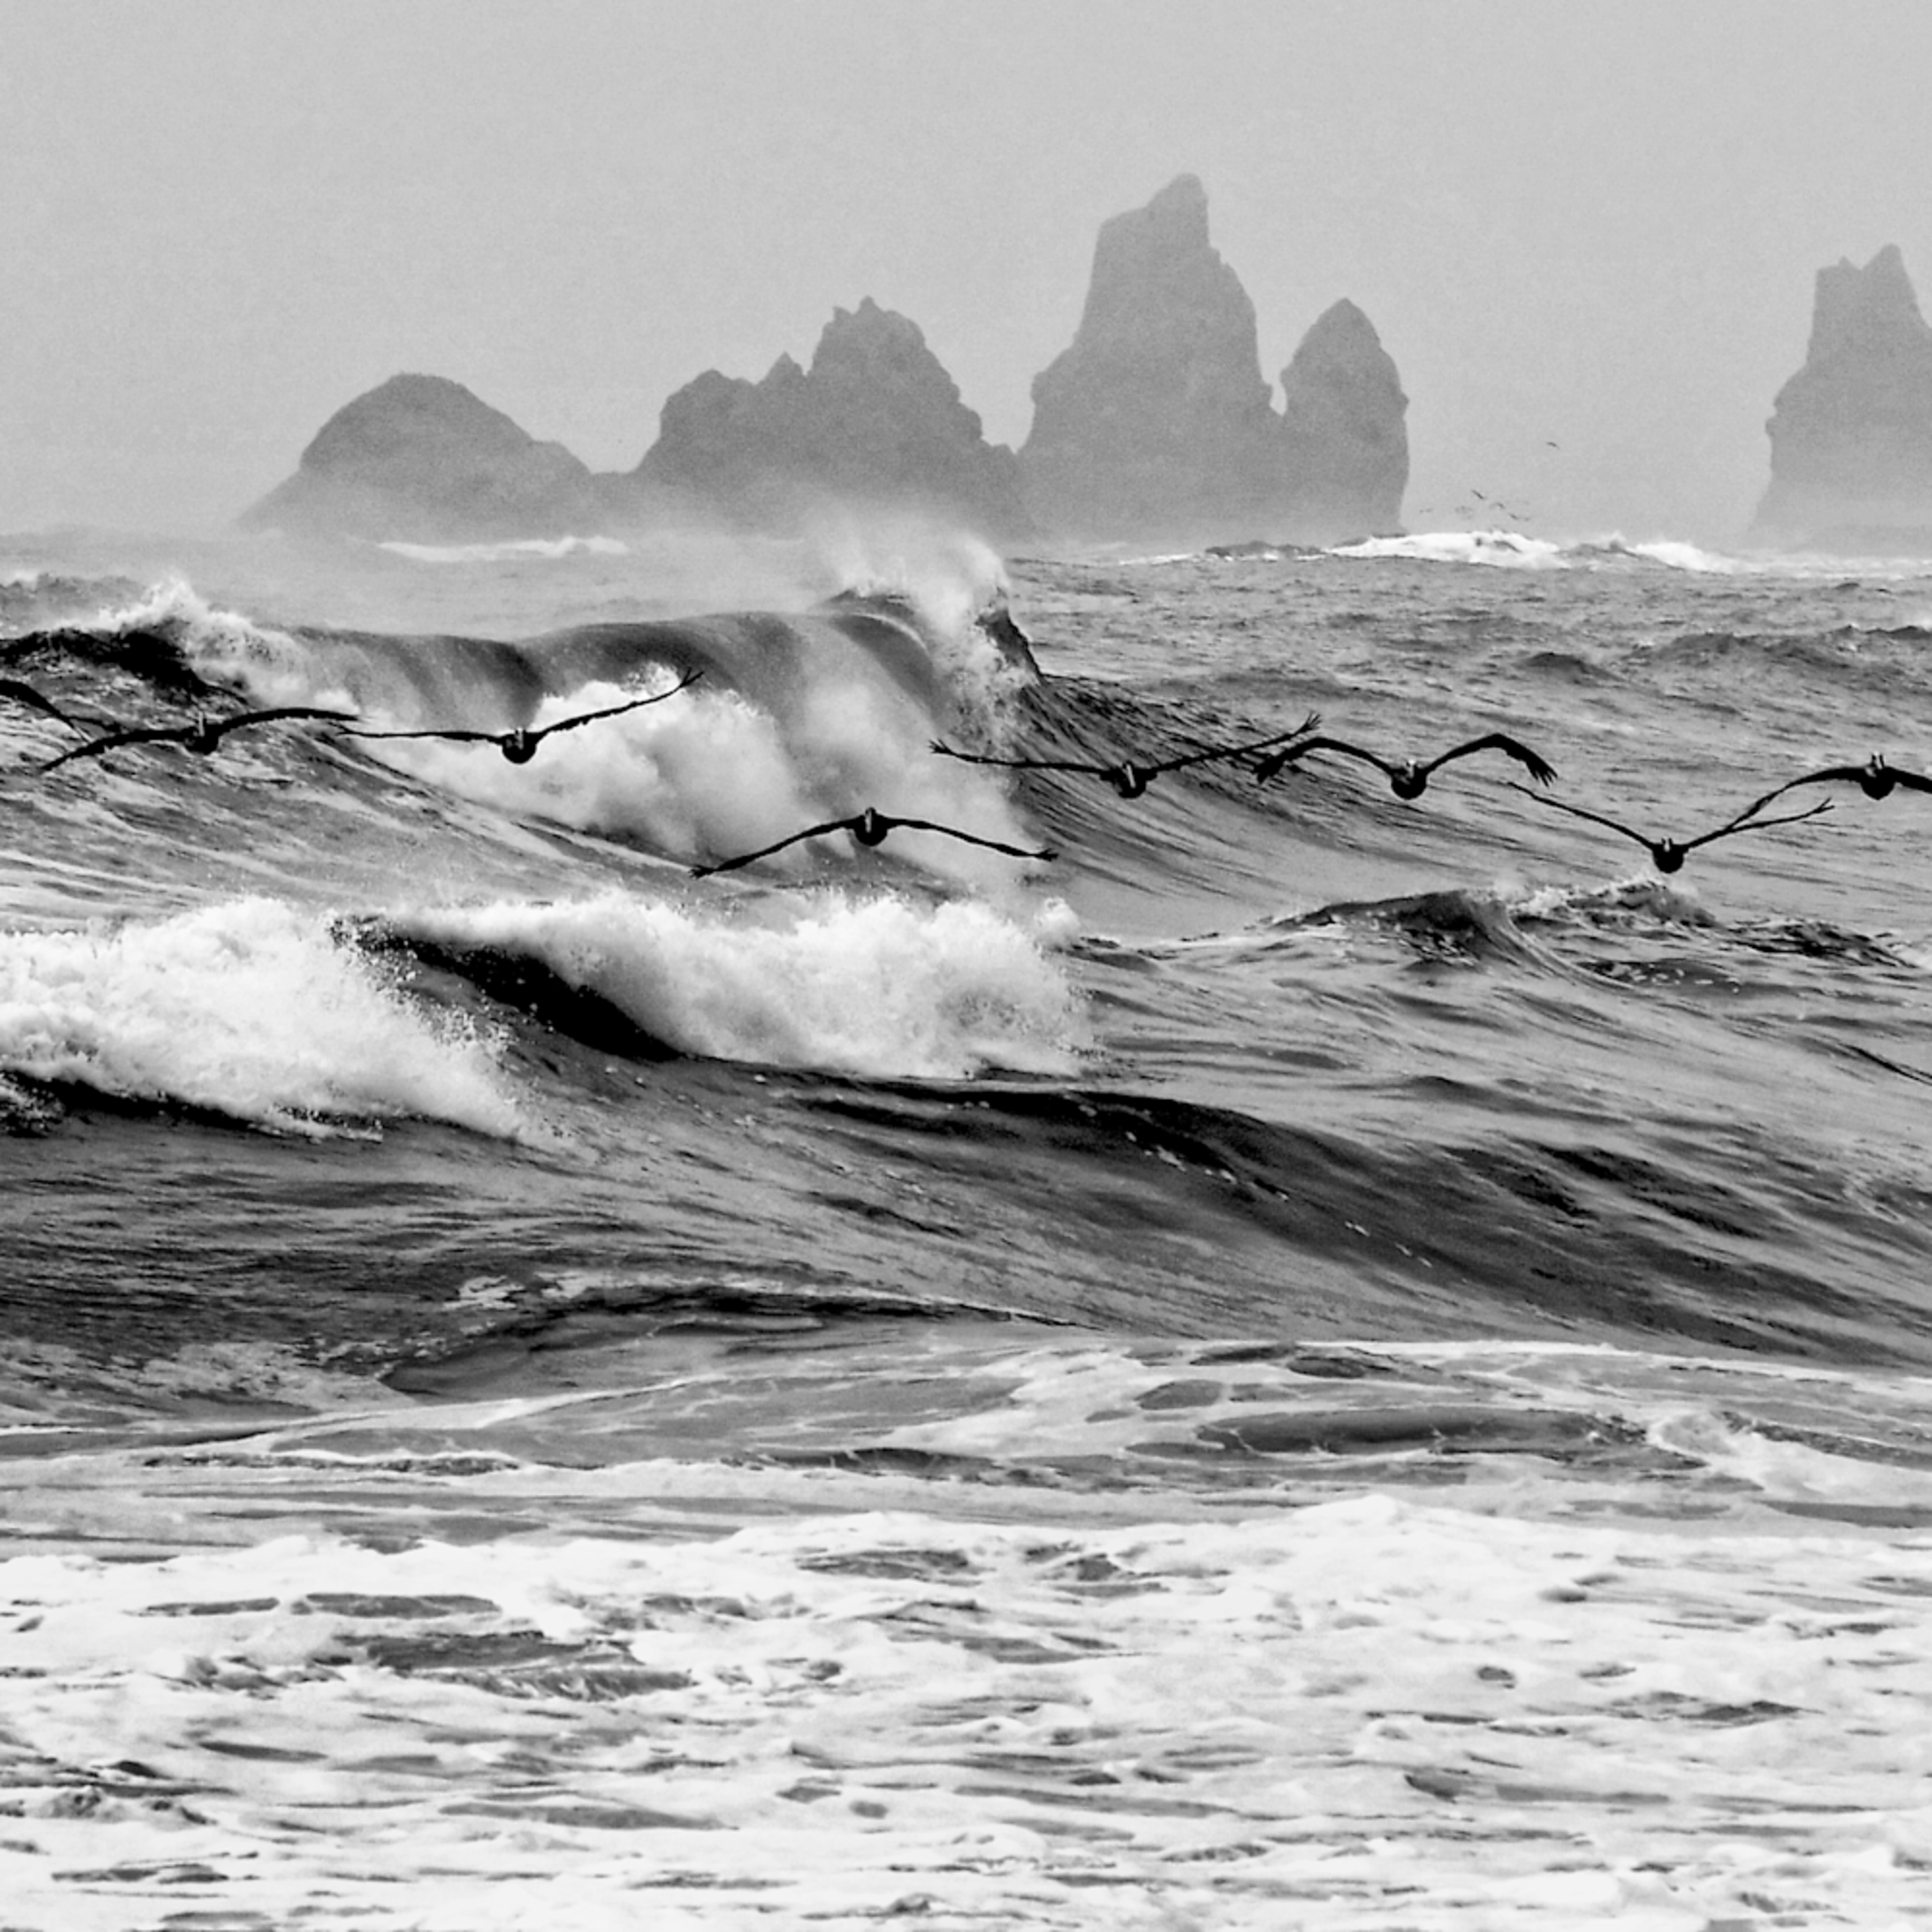 Pelicans skimming the waves ovjcdl